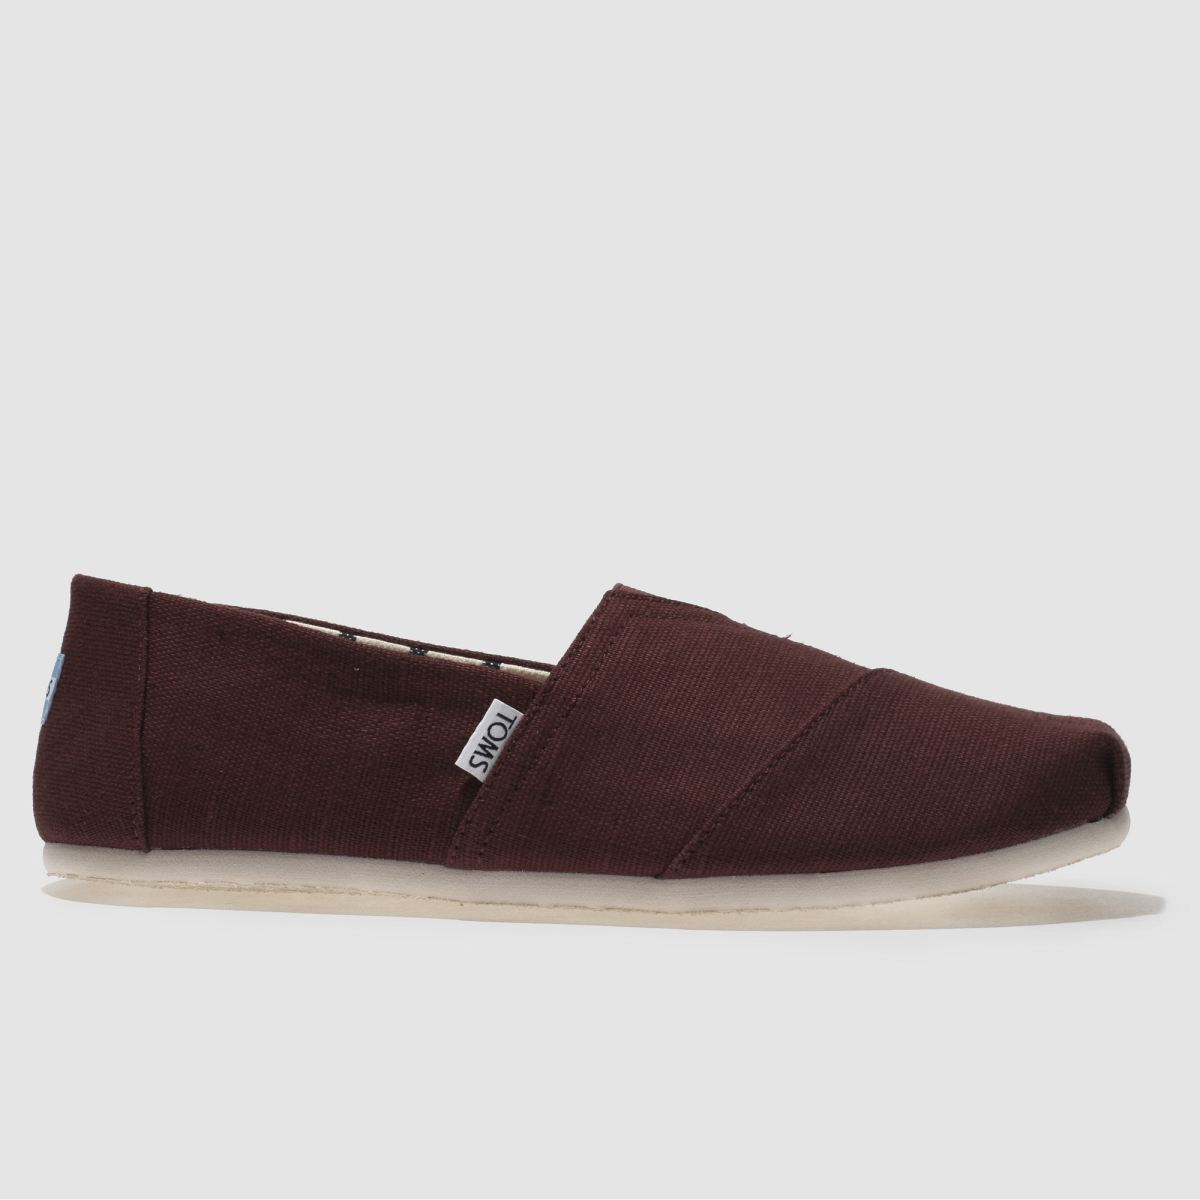 Toms Burgundy Classic Venice Shoes